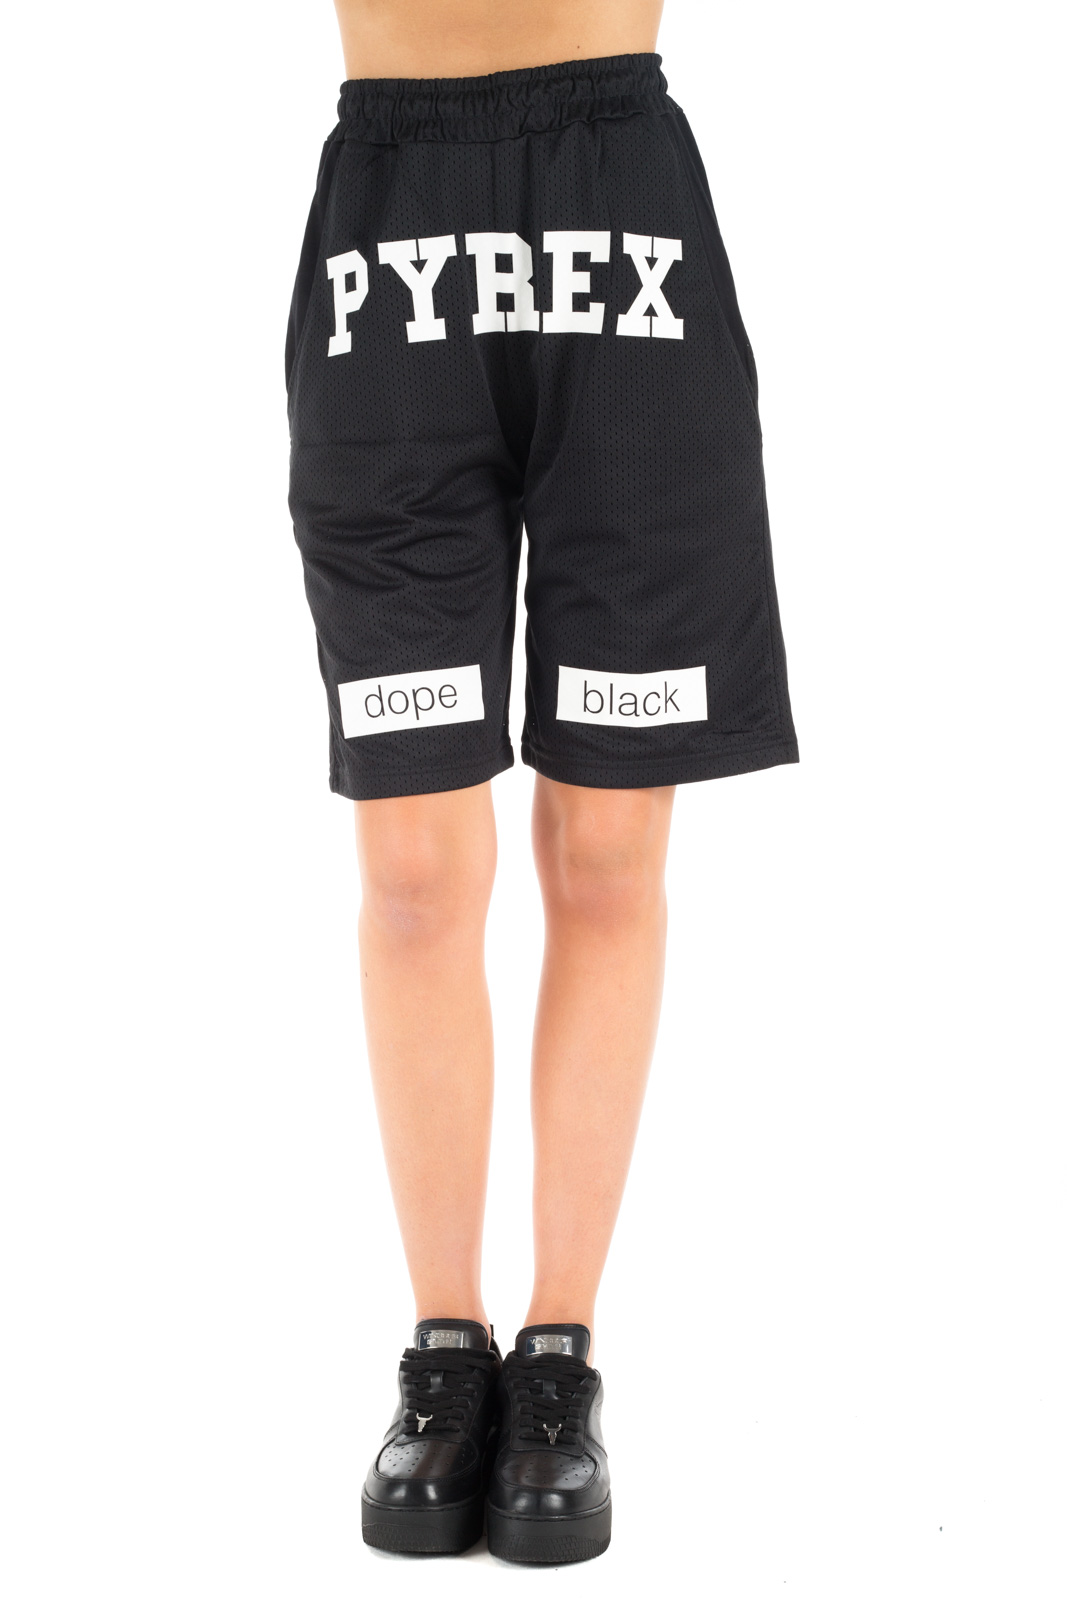 Pyrex - Black Basketball Shorts Unisex